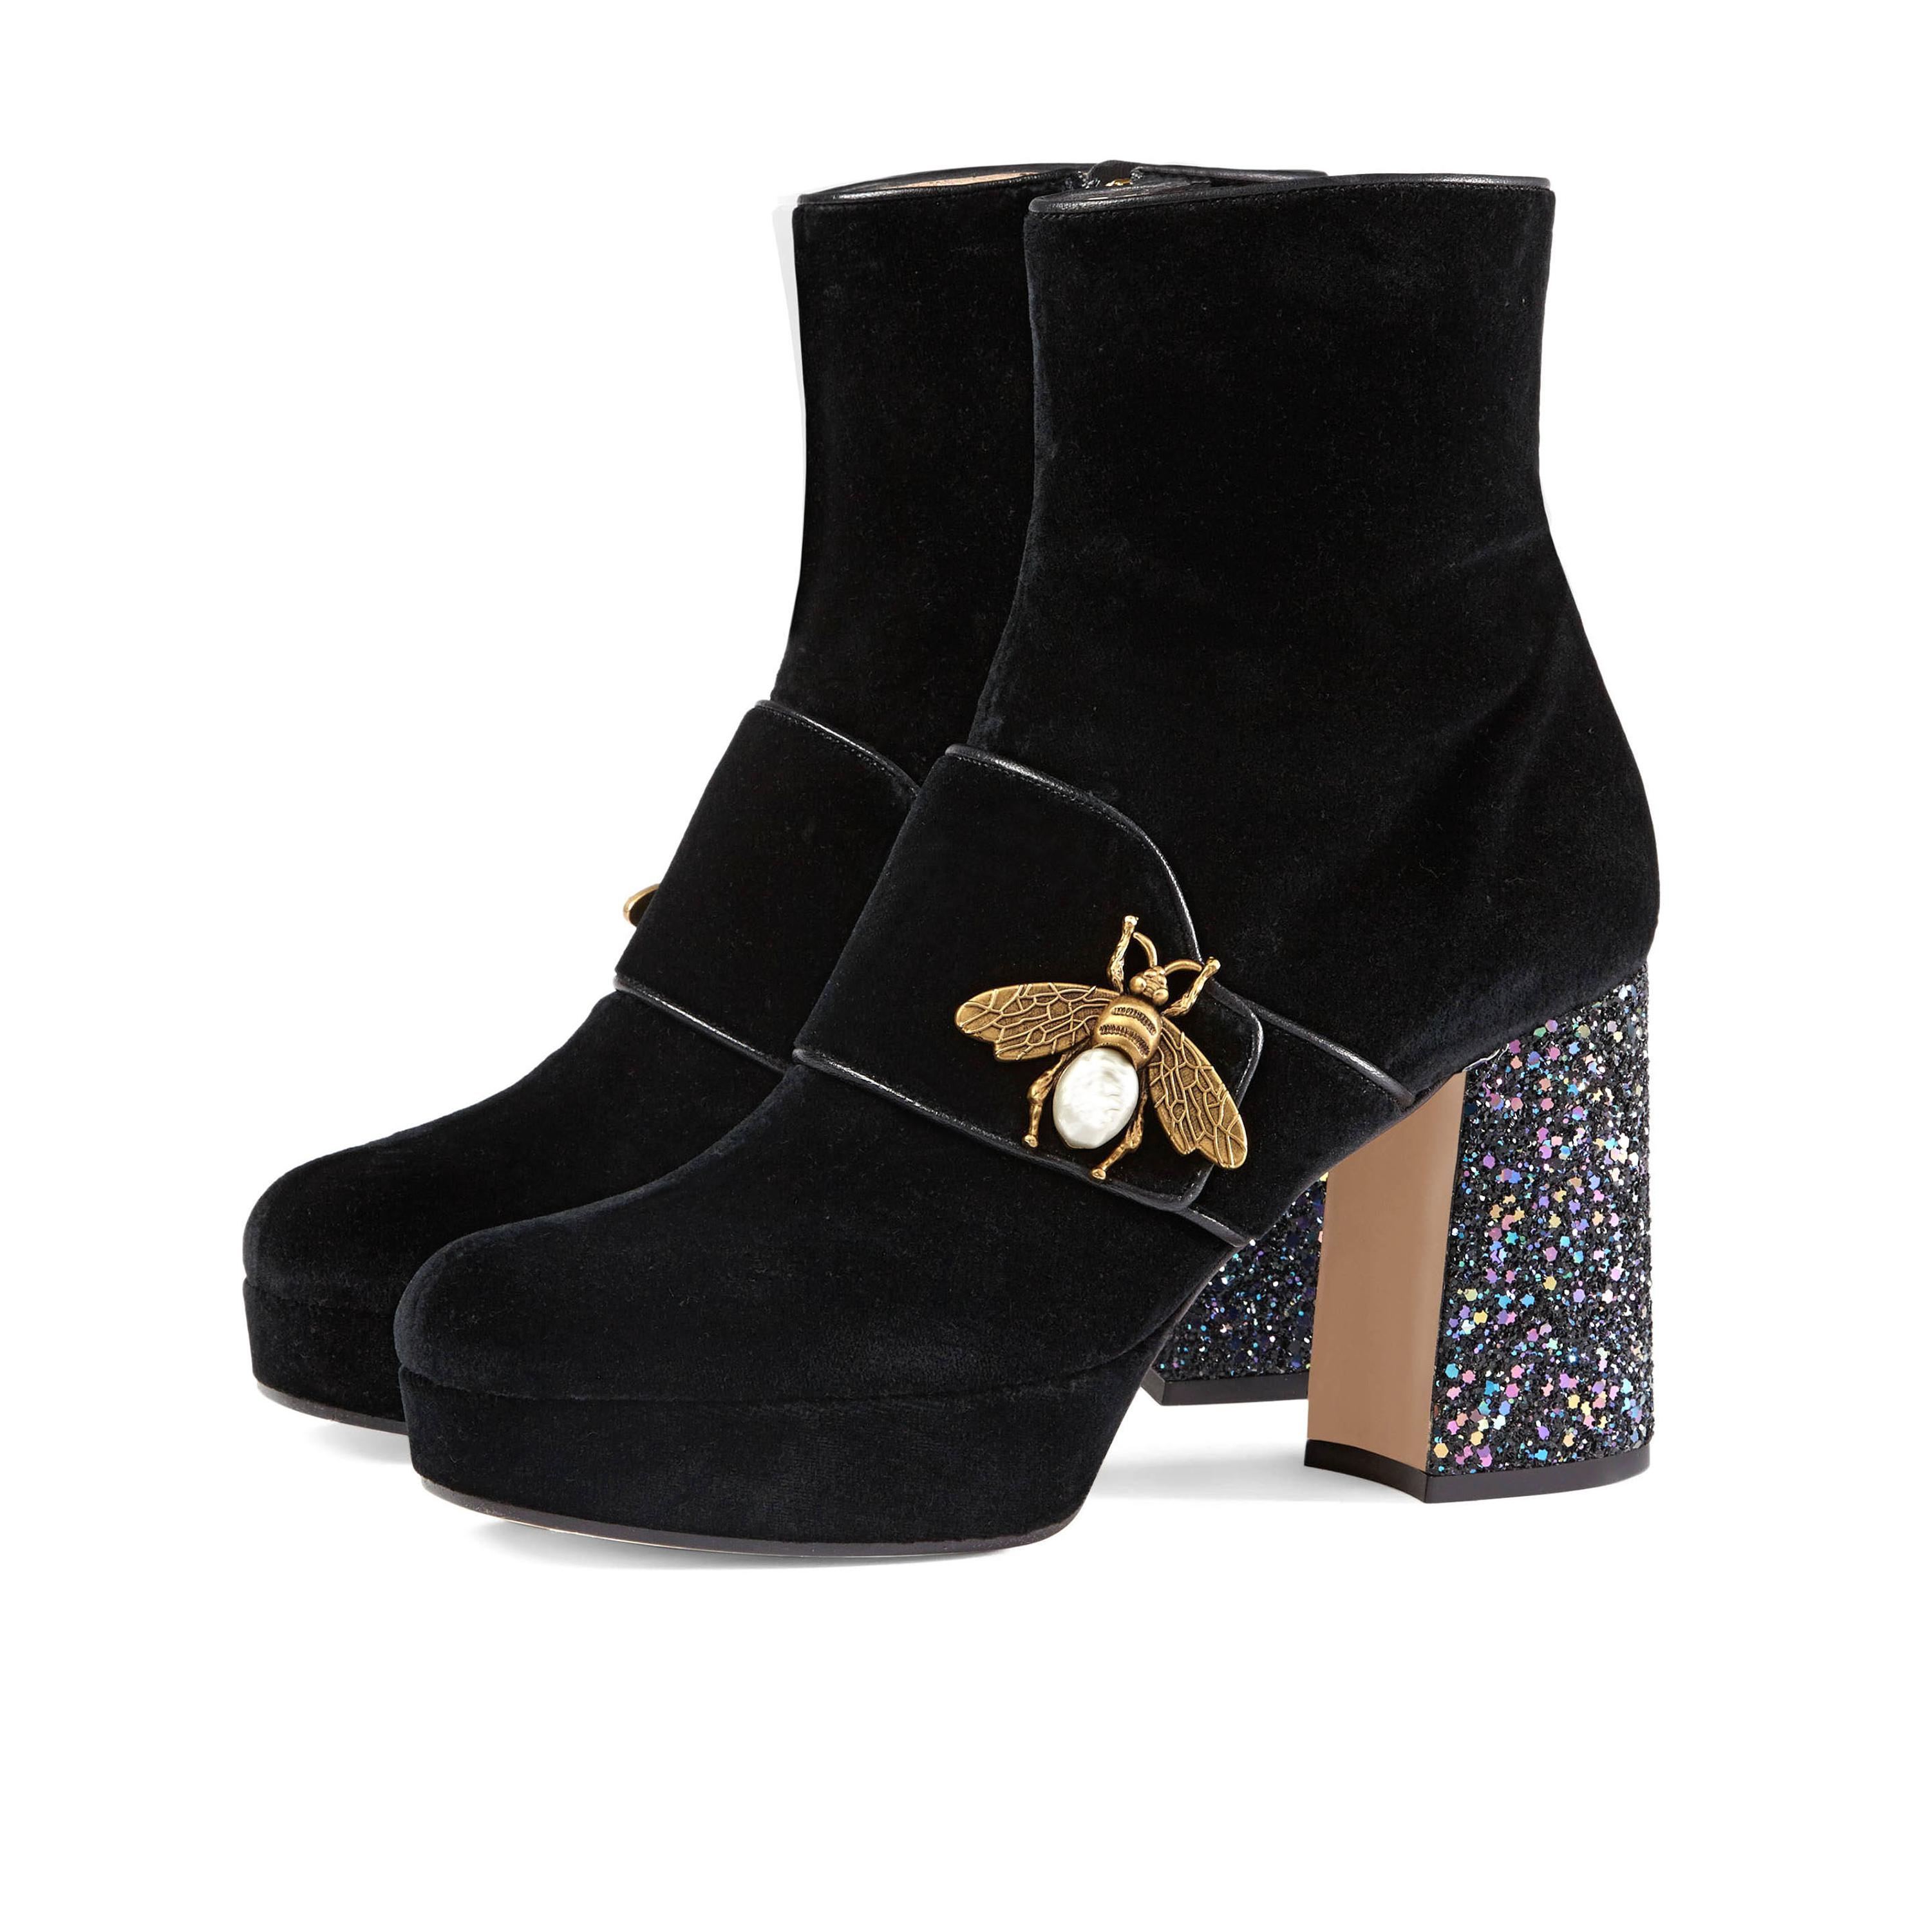 2018 new fashion winter suede leather boots for women with metal and strap decorations